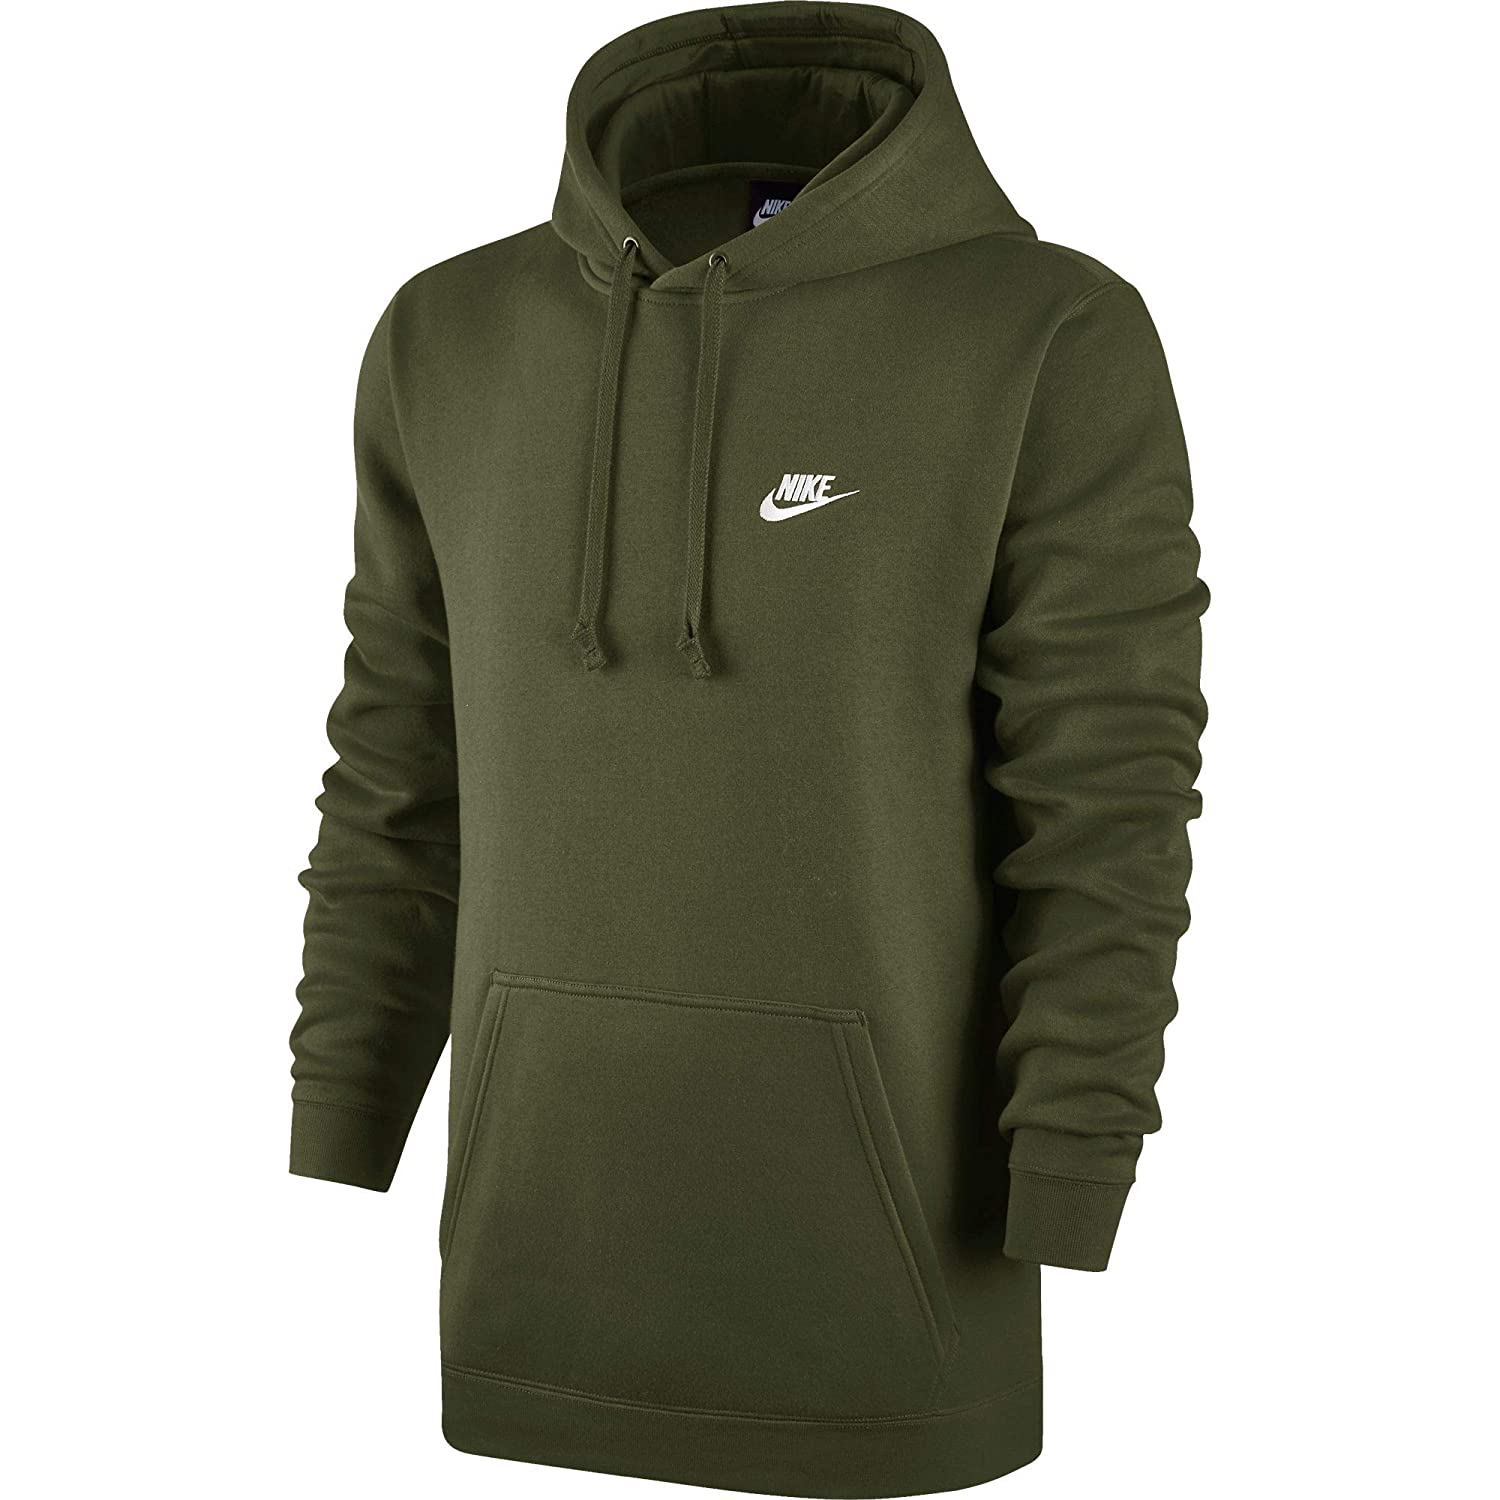 87c78a9b312e Amazon.com  Nike Sportswear Men s Pullover Club Hoodie  Sports   Outdoors